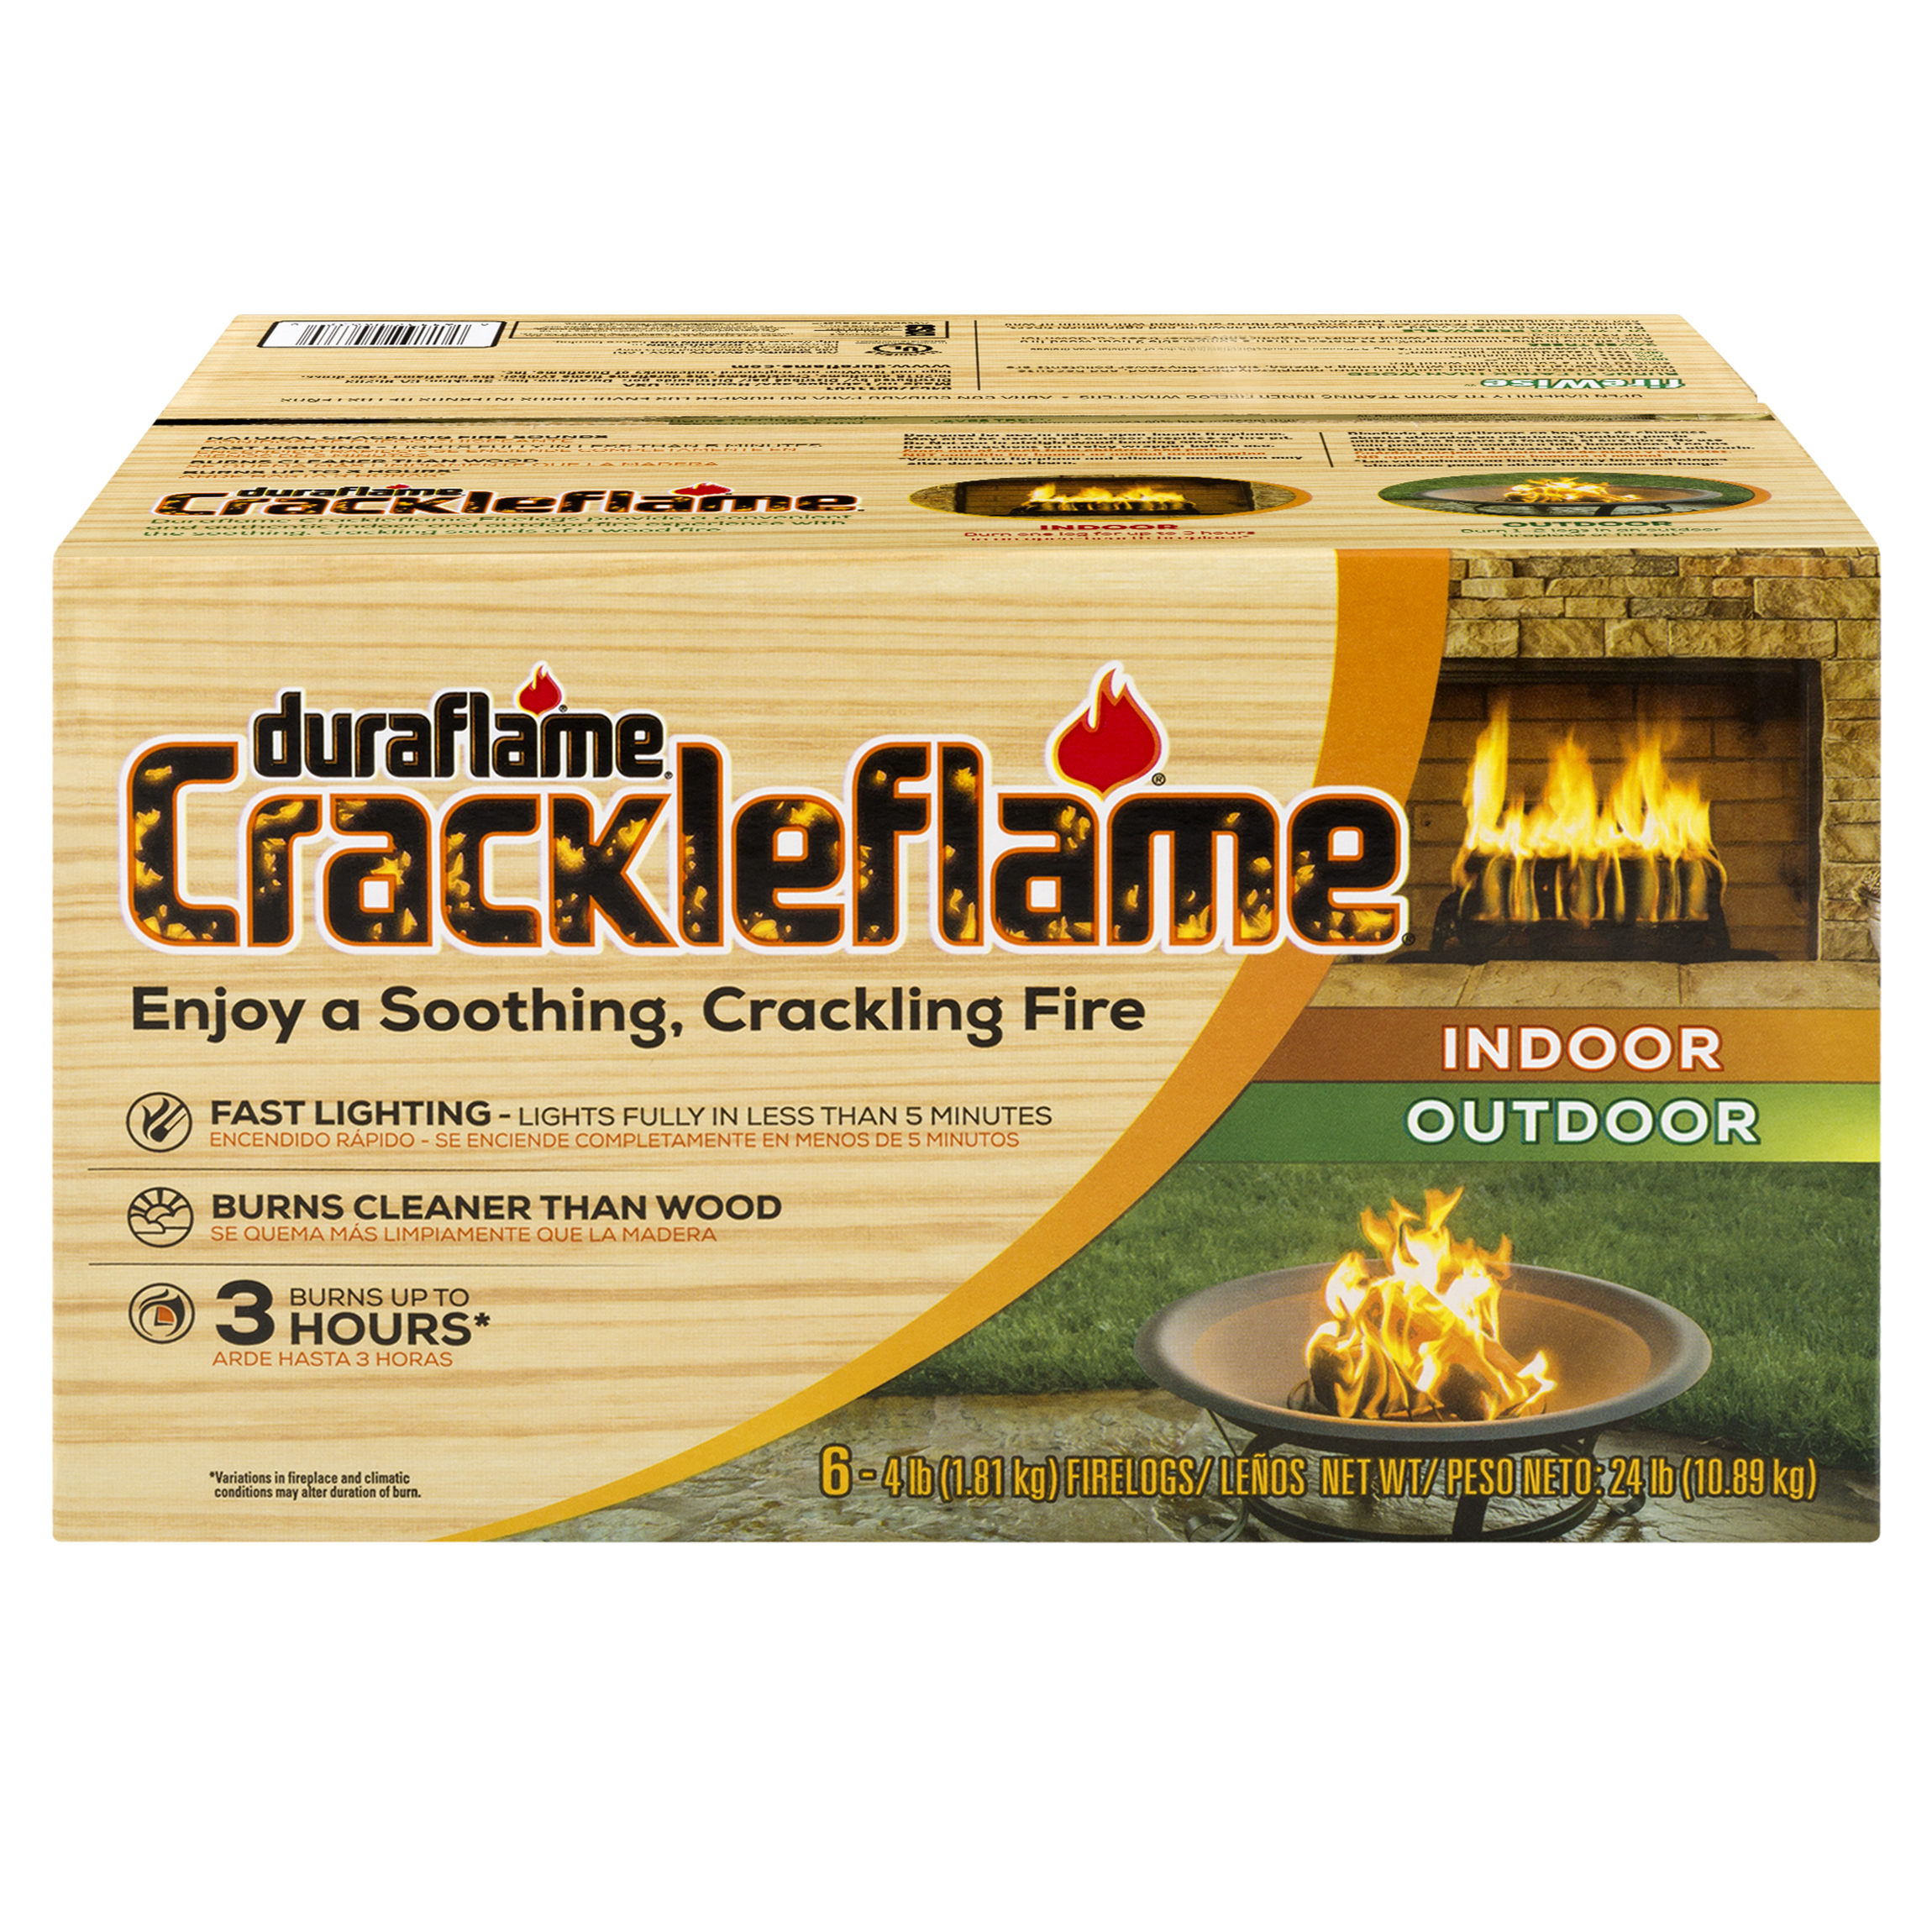 Duraflame Crackleflame 3-Hr Firelogs for Fireplaces and Fire Pits, 6PK